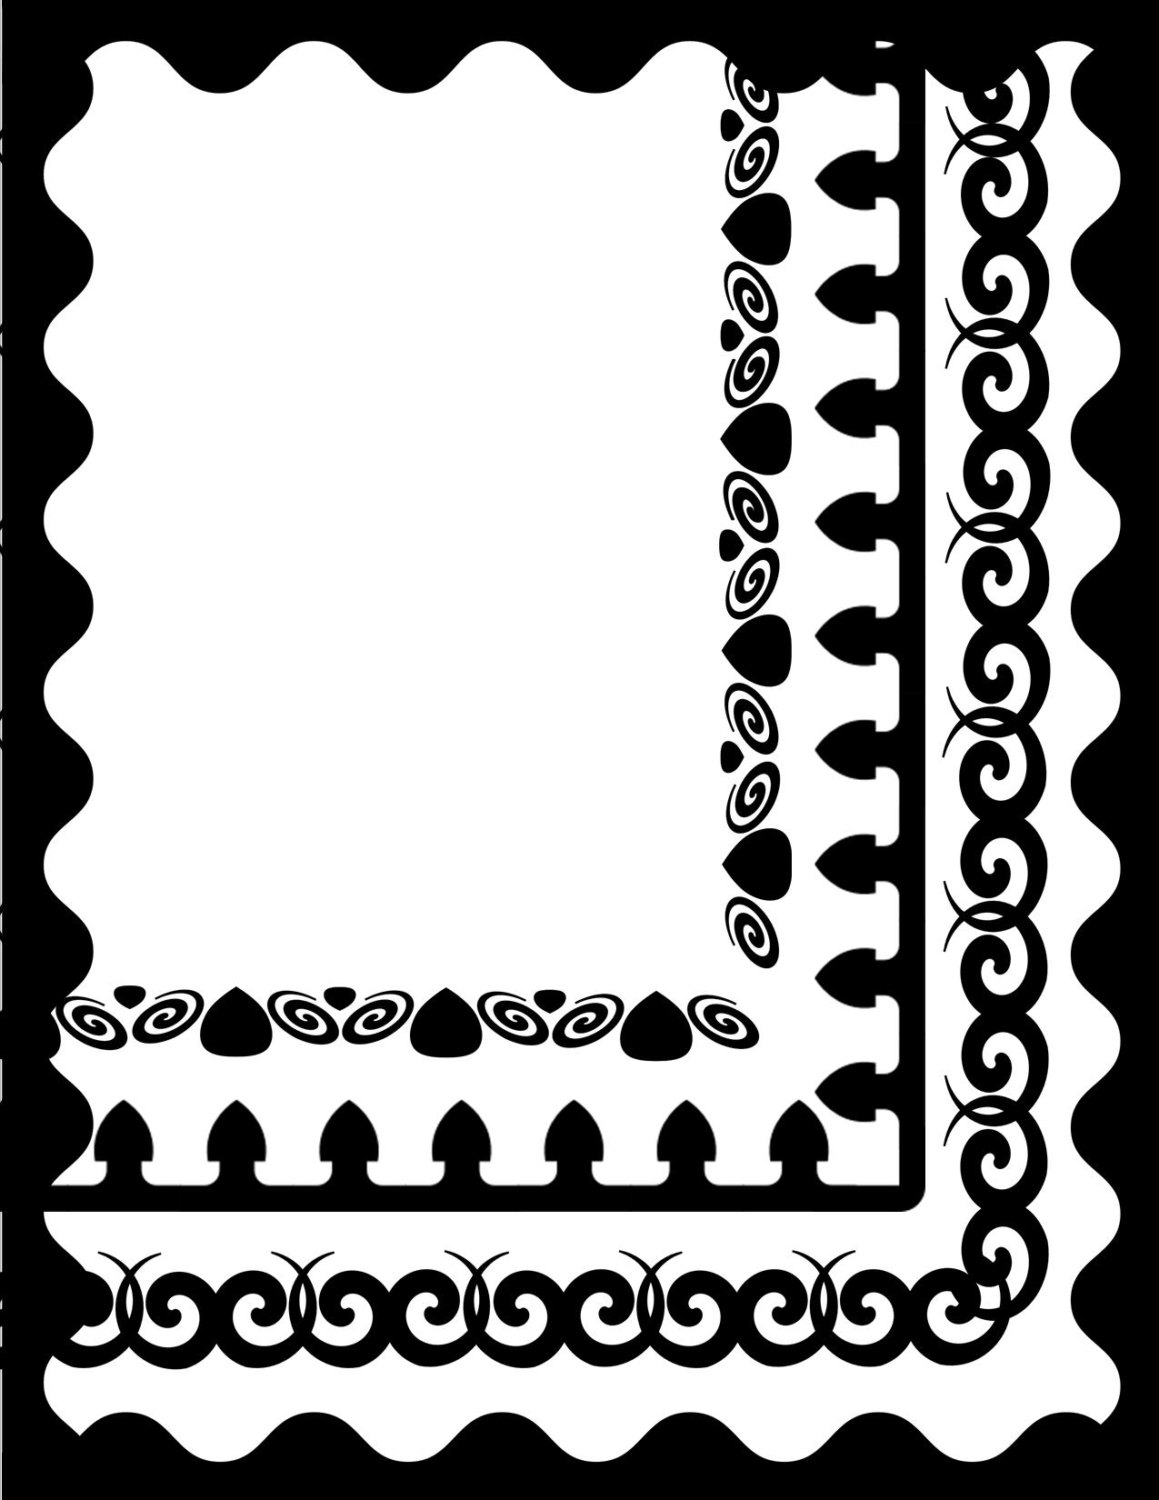 Gatsby Frame Clip Art free image.